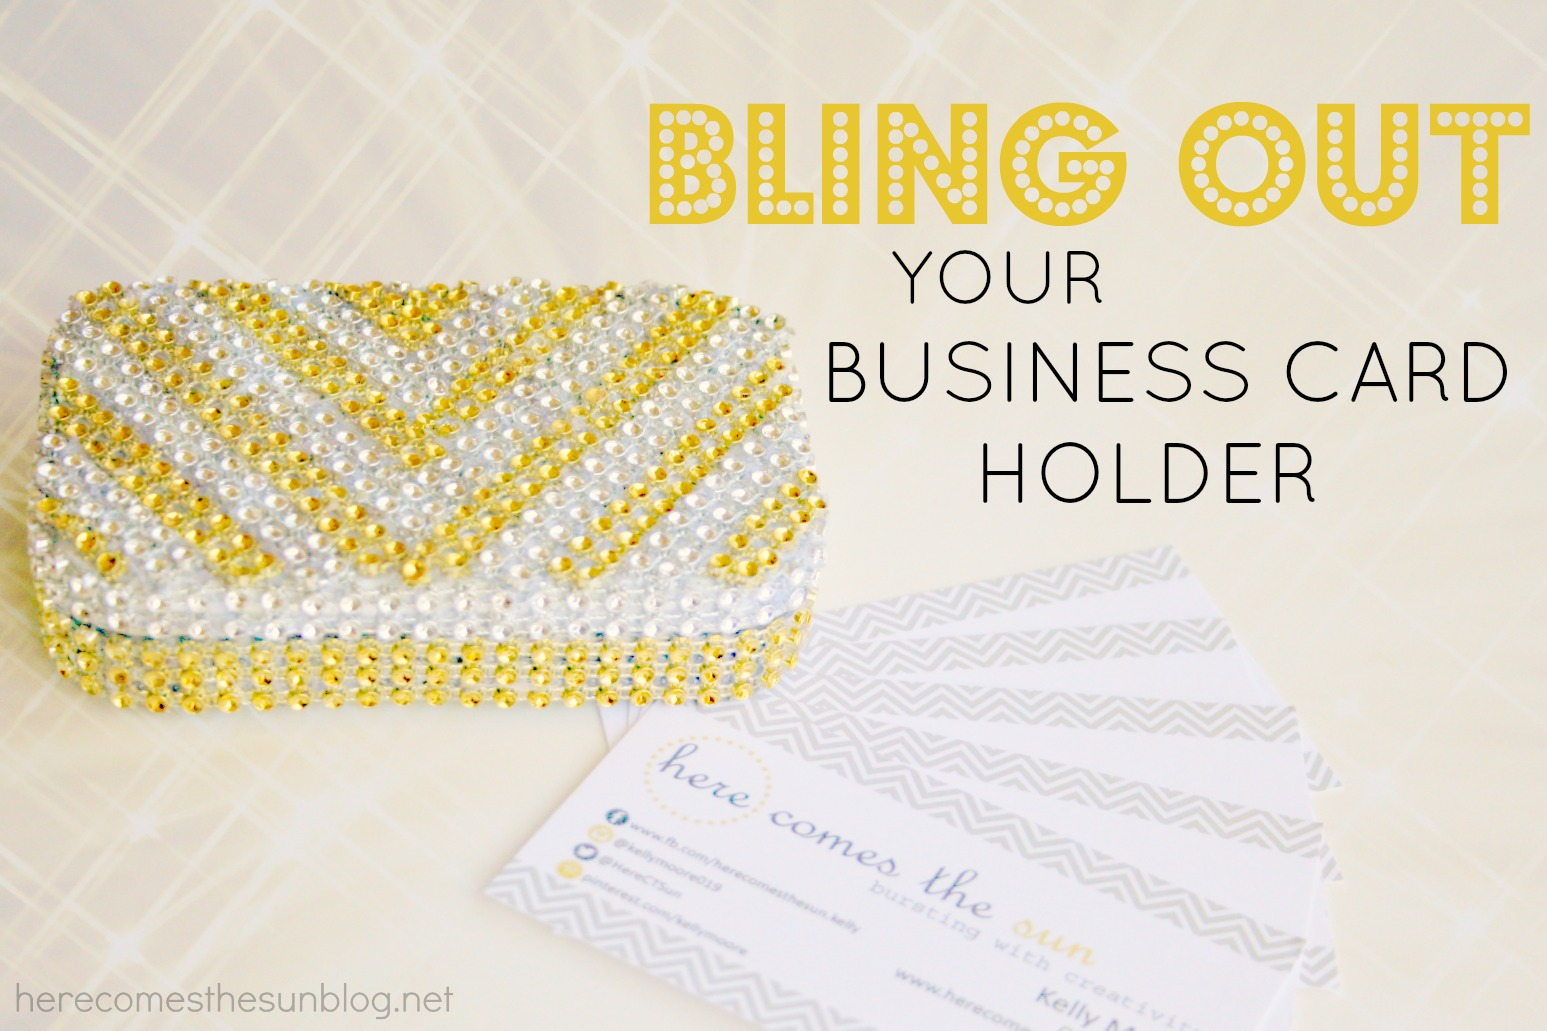 Bling Out Your Business Card Holder | Here Comes The Sun